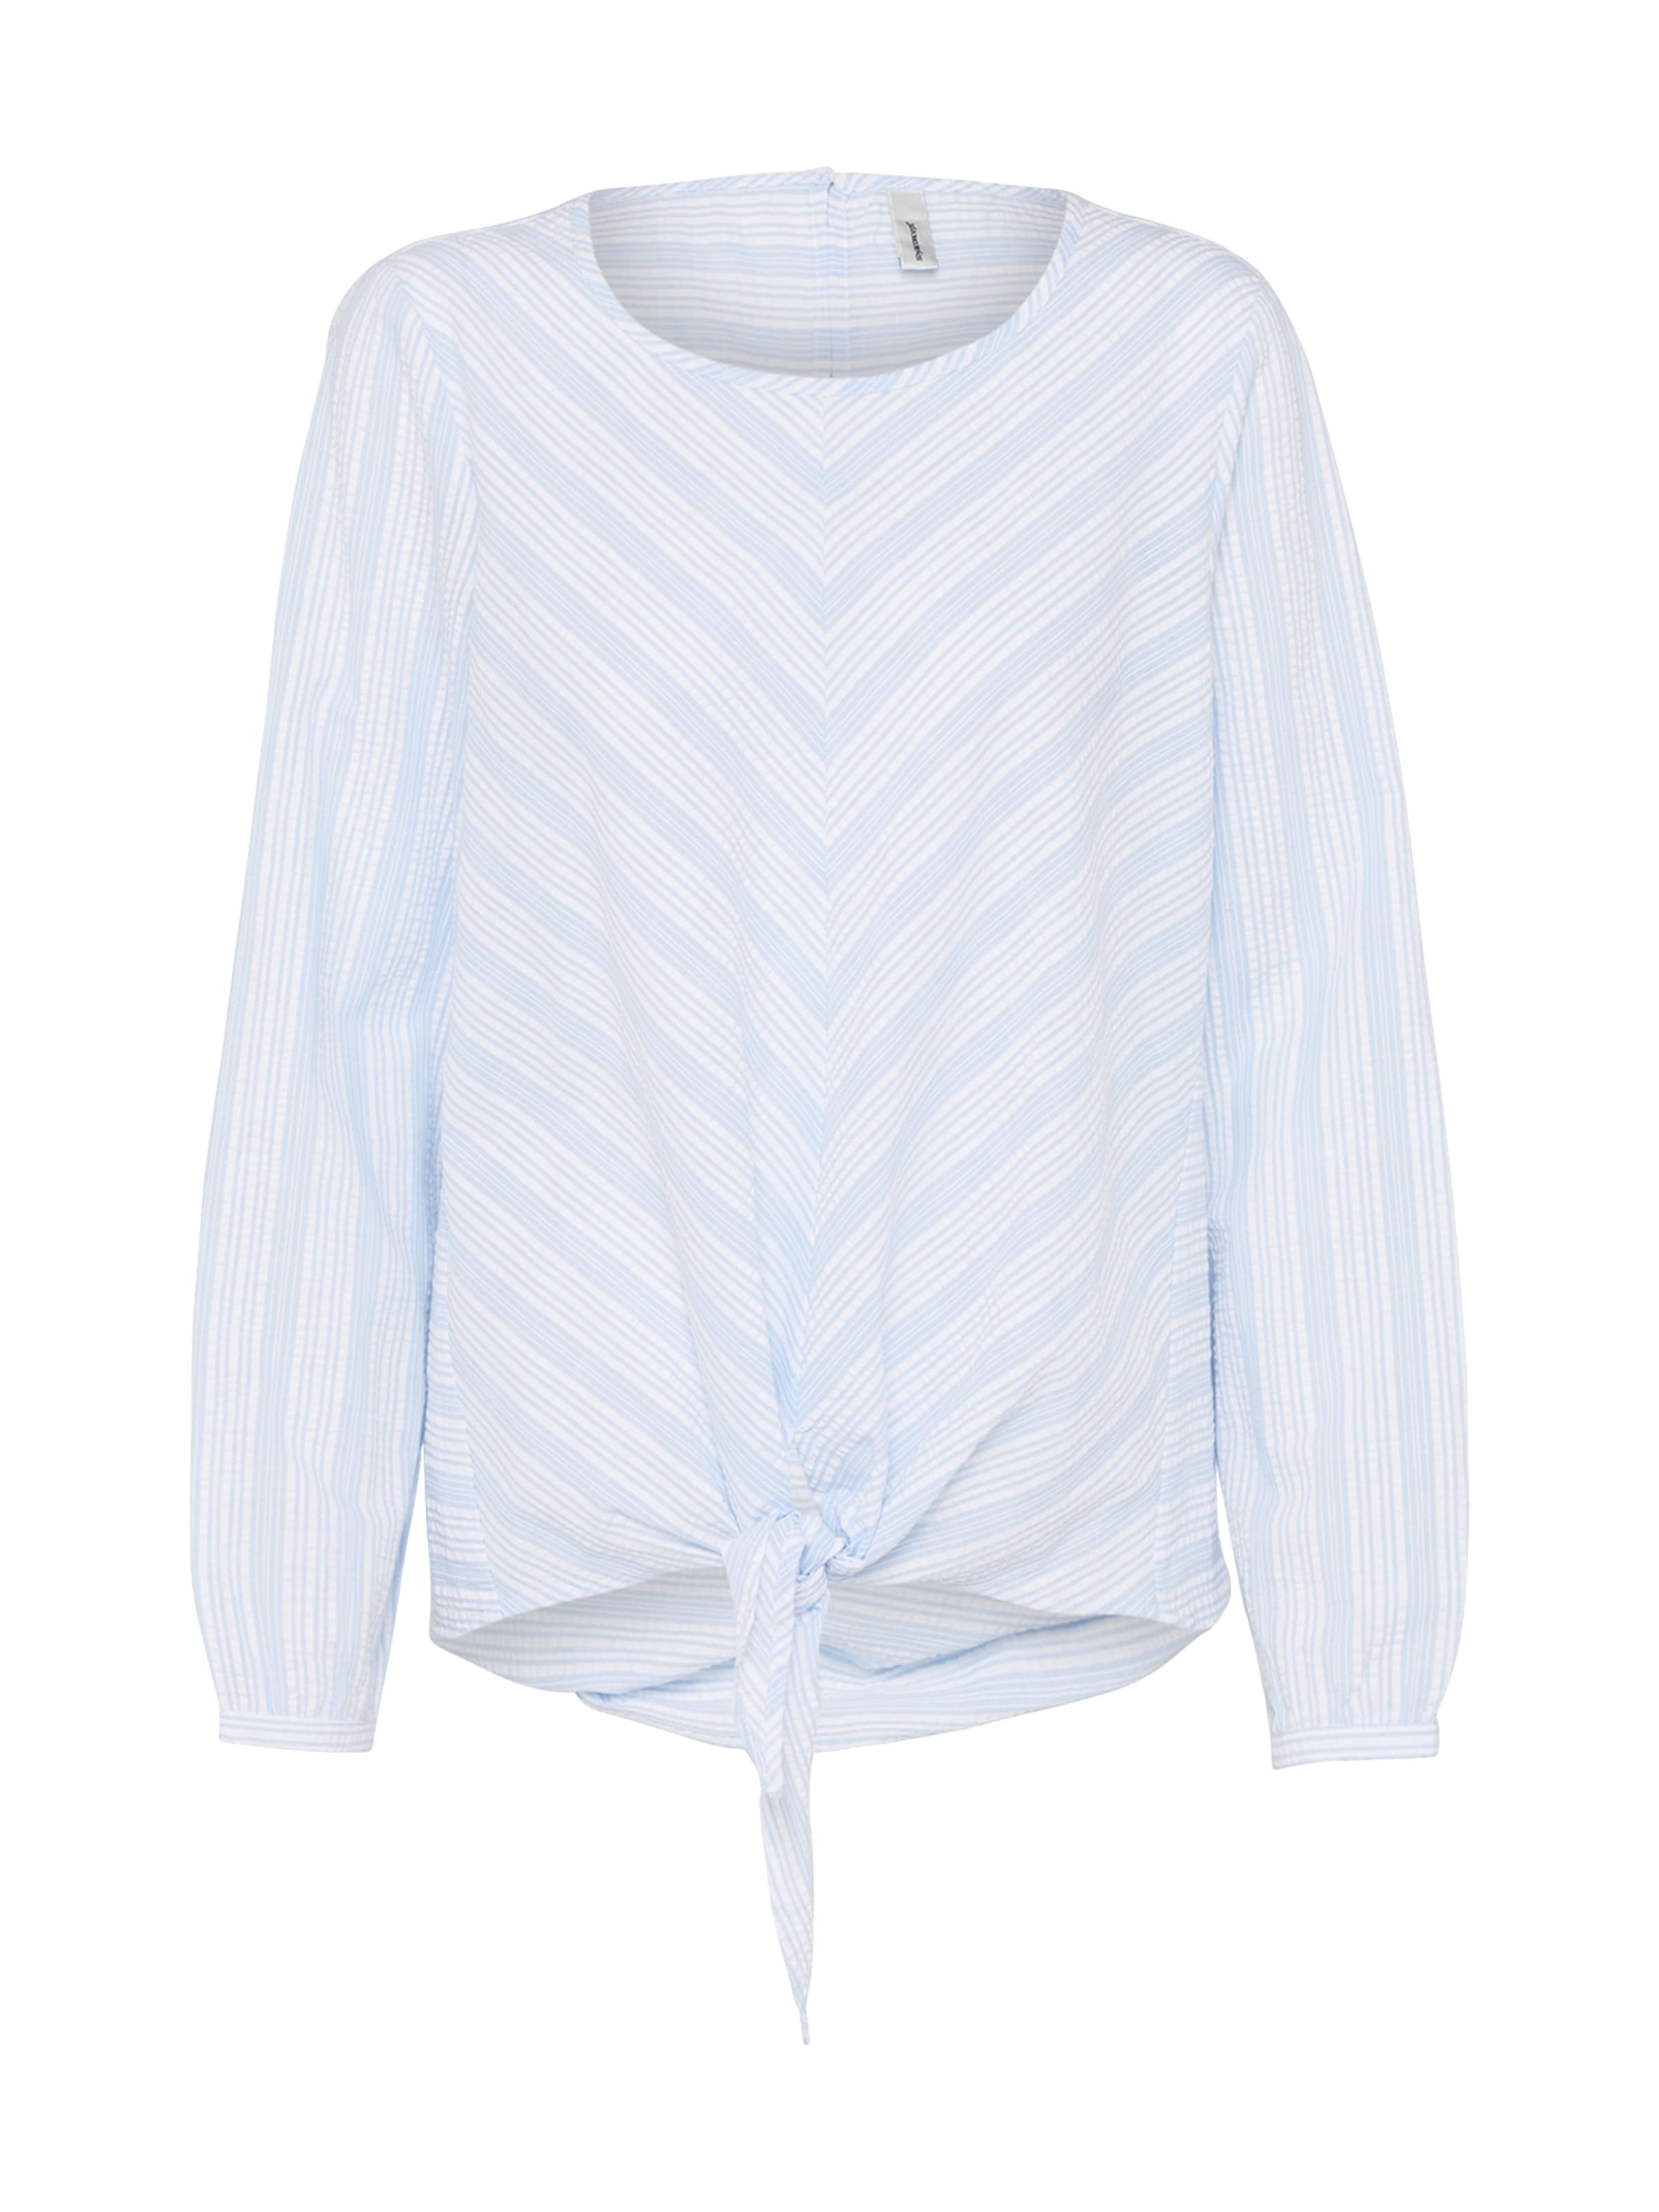 Bluse In 1' Soyaconcept HellblauOffwhite 'isidora 8XPNZn0wOk